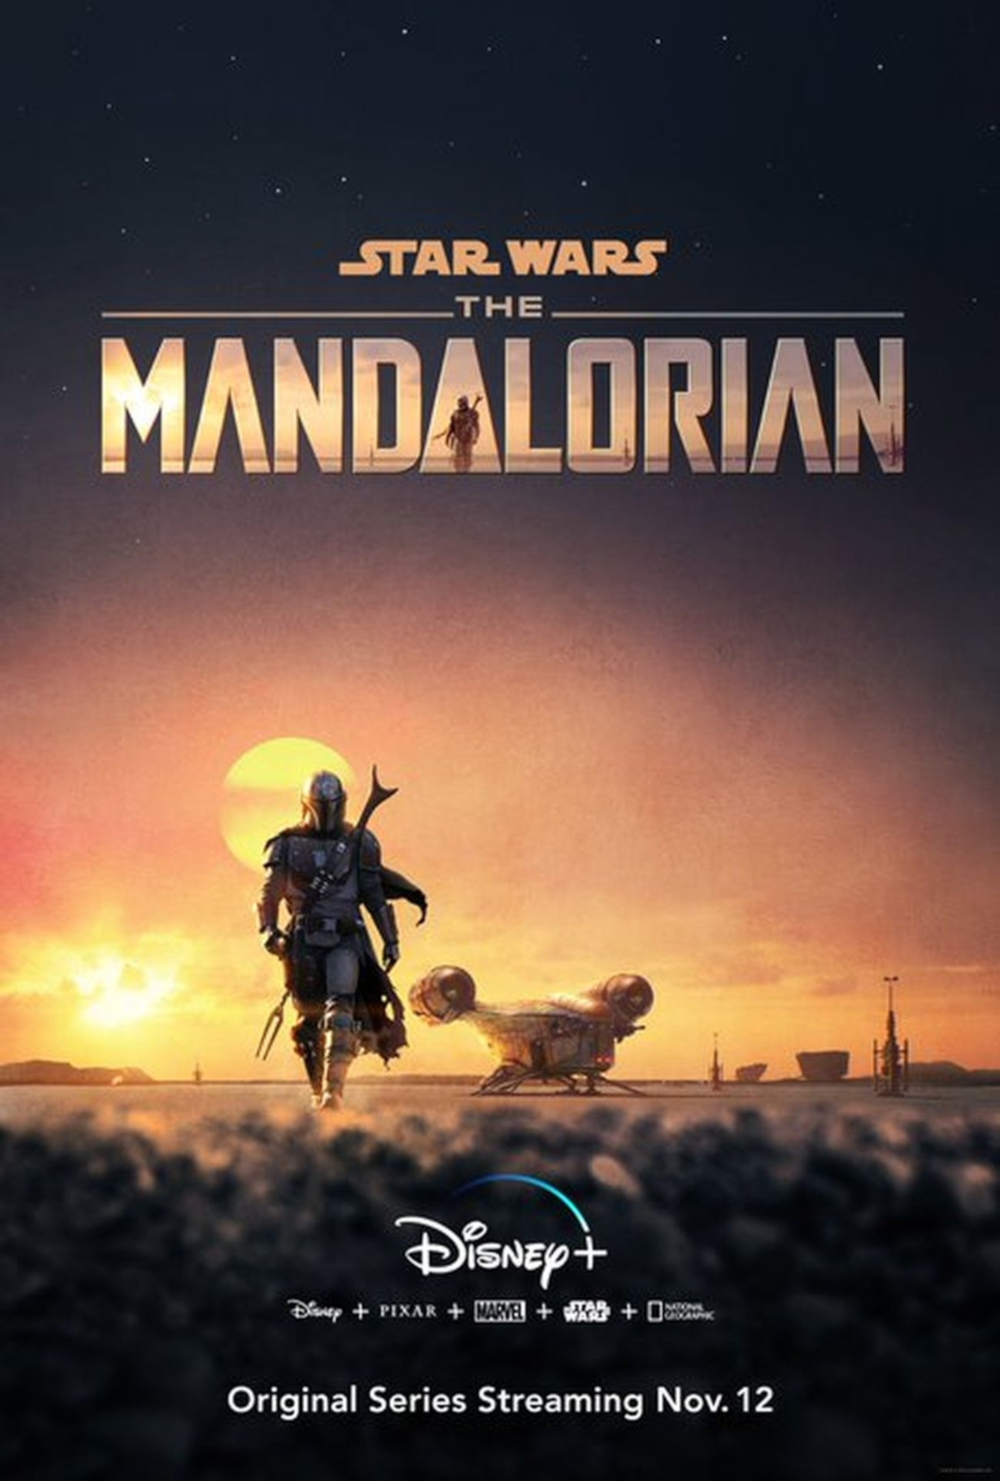 'The Mandalorian' is set five years after the events in the 1983 film 'Return of the Jedi.' — Picture courtesy of Disney+ Hotstar